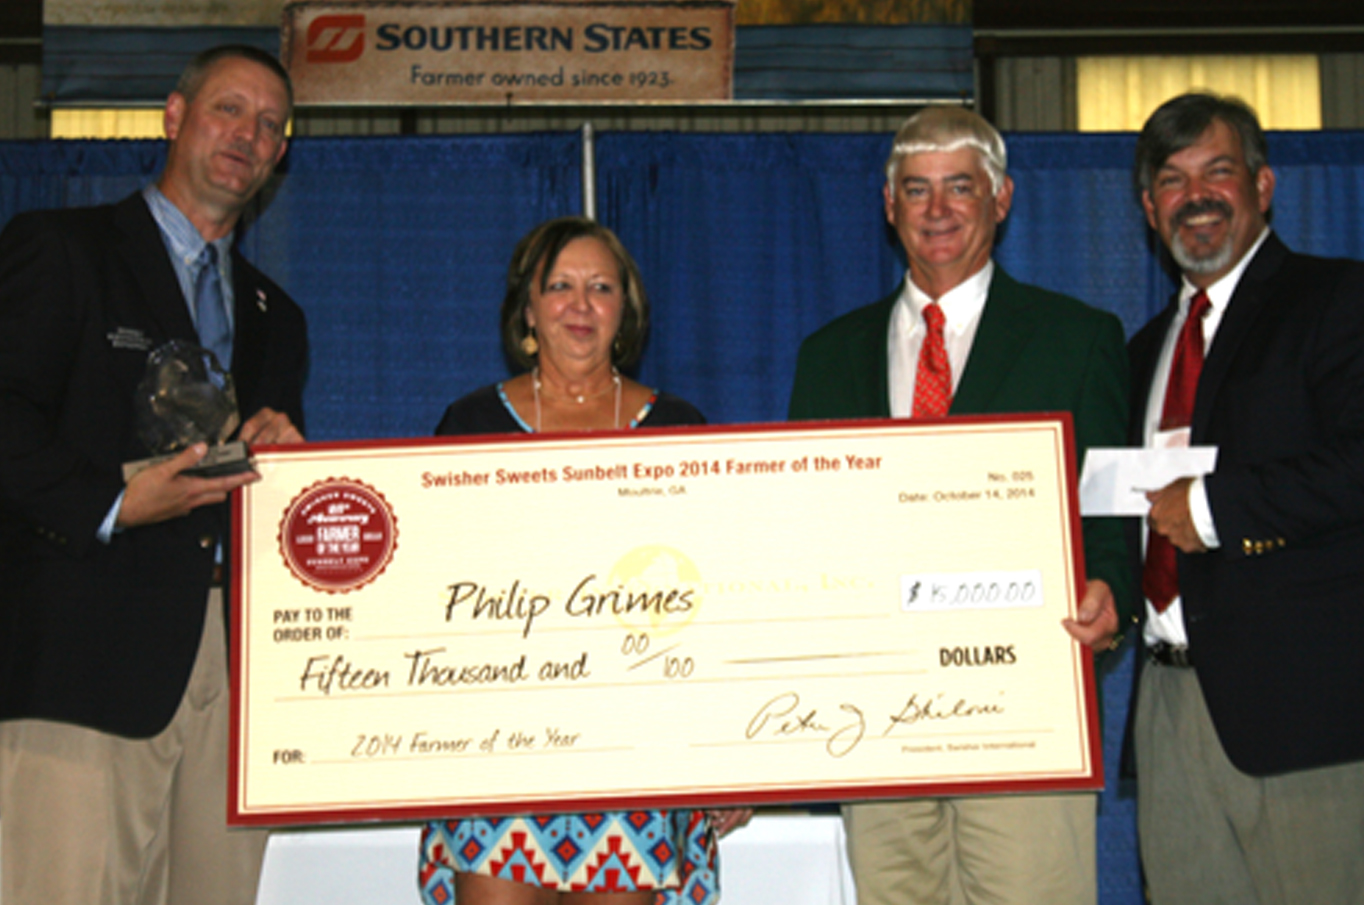 Pictured are, from left, Chip Blaylock, executive director of the Sunbelt Expo, Philip Grimes' wife Jane, Philip Grimes and Swisher Sweets representative Ron Carroll.